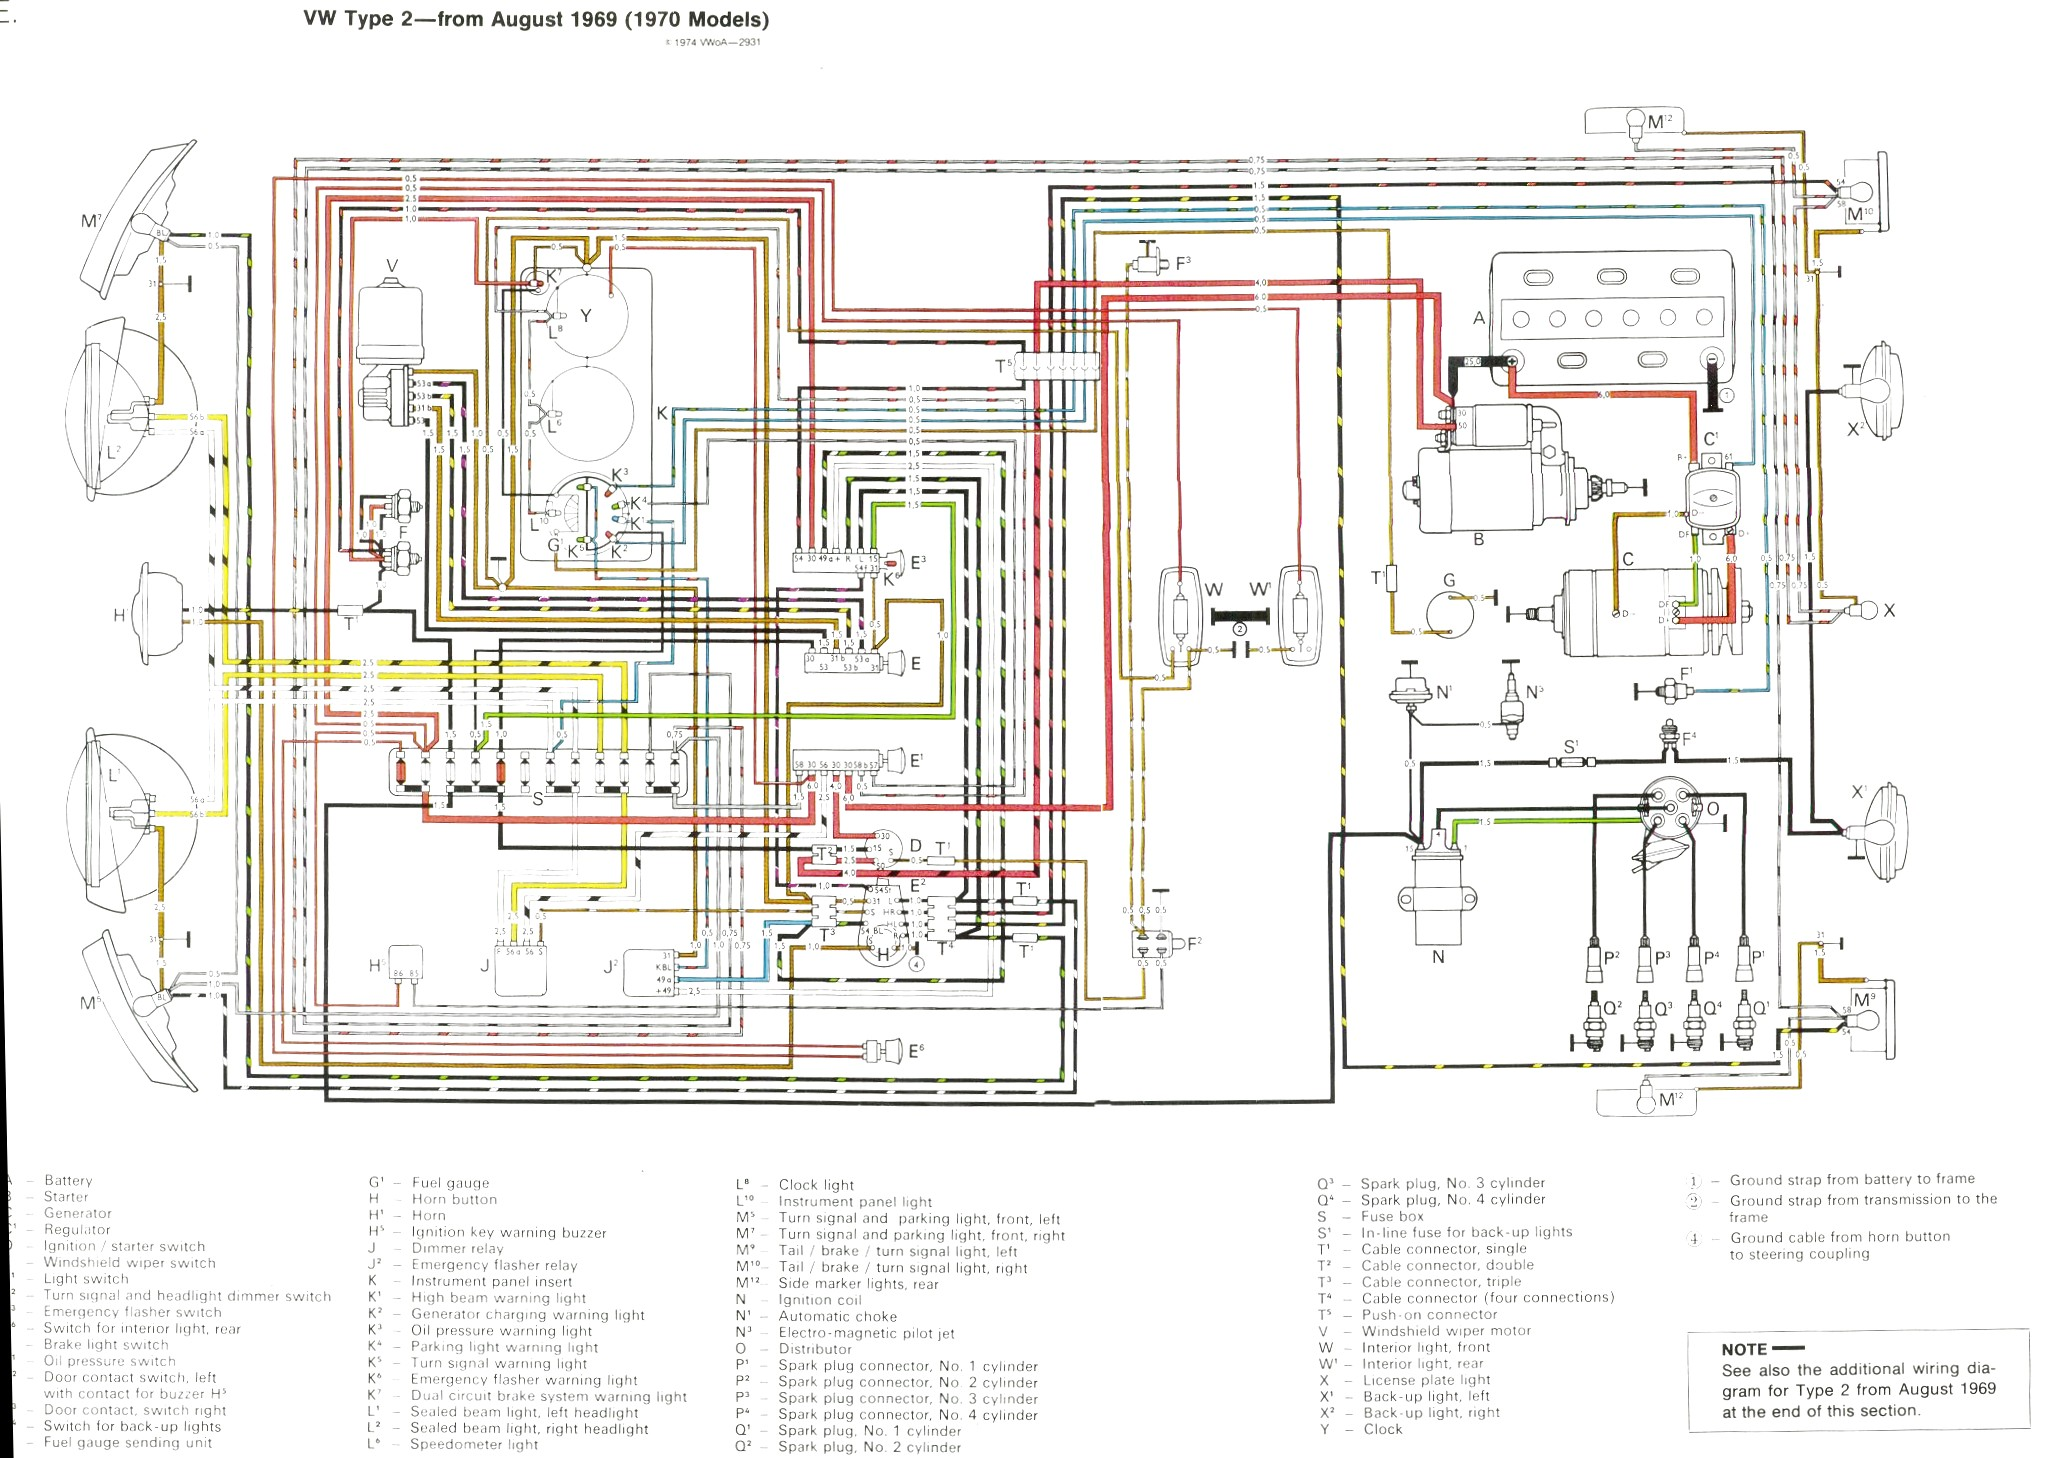 bus 69 70 vintagebus com vw bus (and other) wiring diagrams Wiring Harness Diagram at gsmx.co